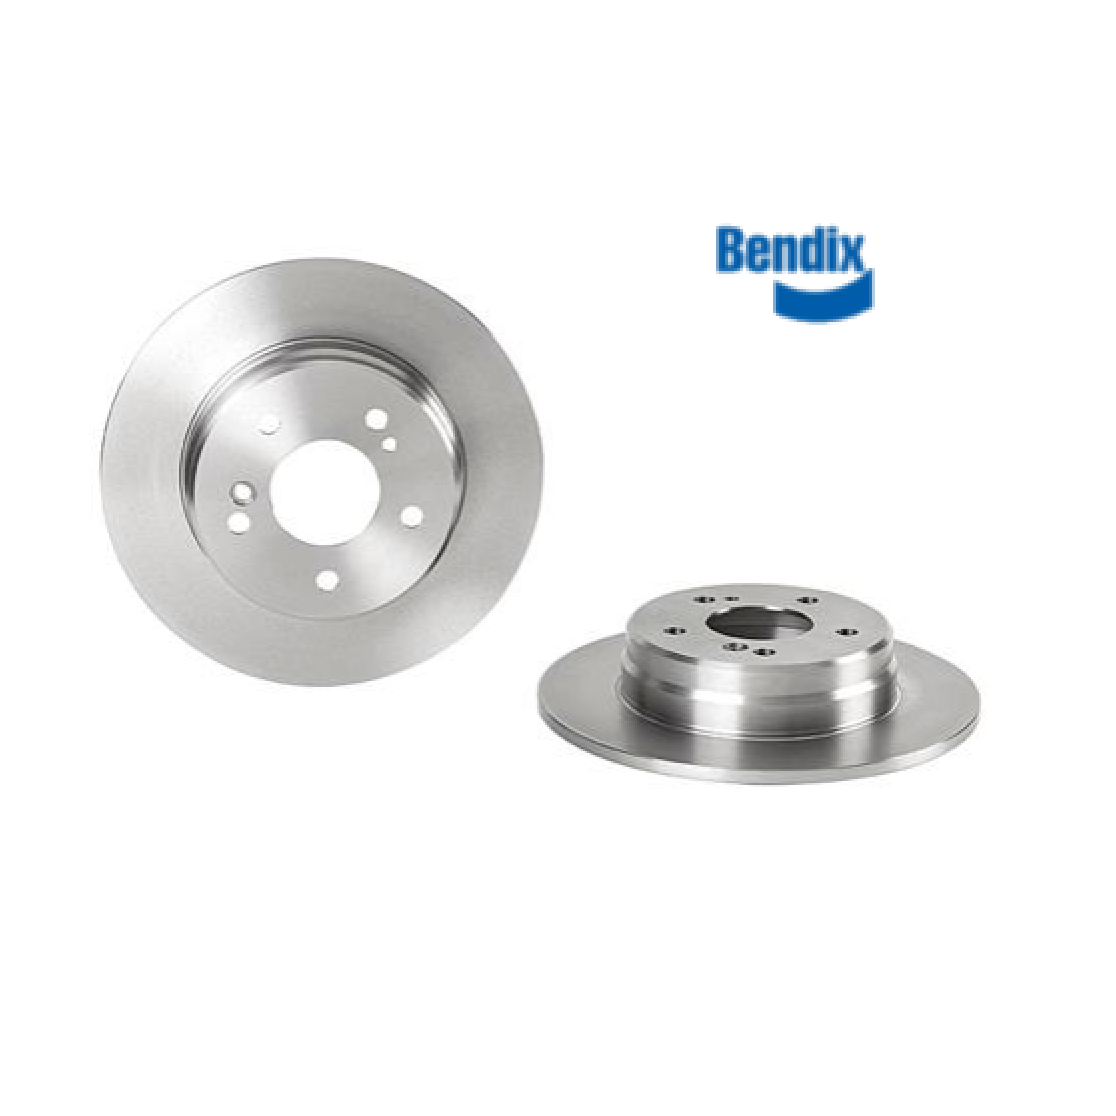 PAIR REAR BRAKE DISCS MERCEDES C CLASS W202 BENDIX FOR A2034230012